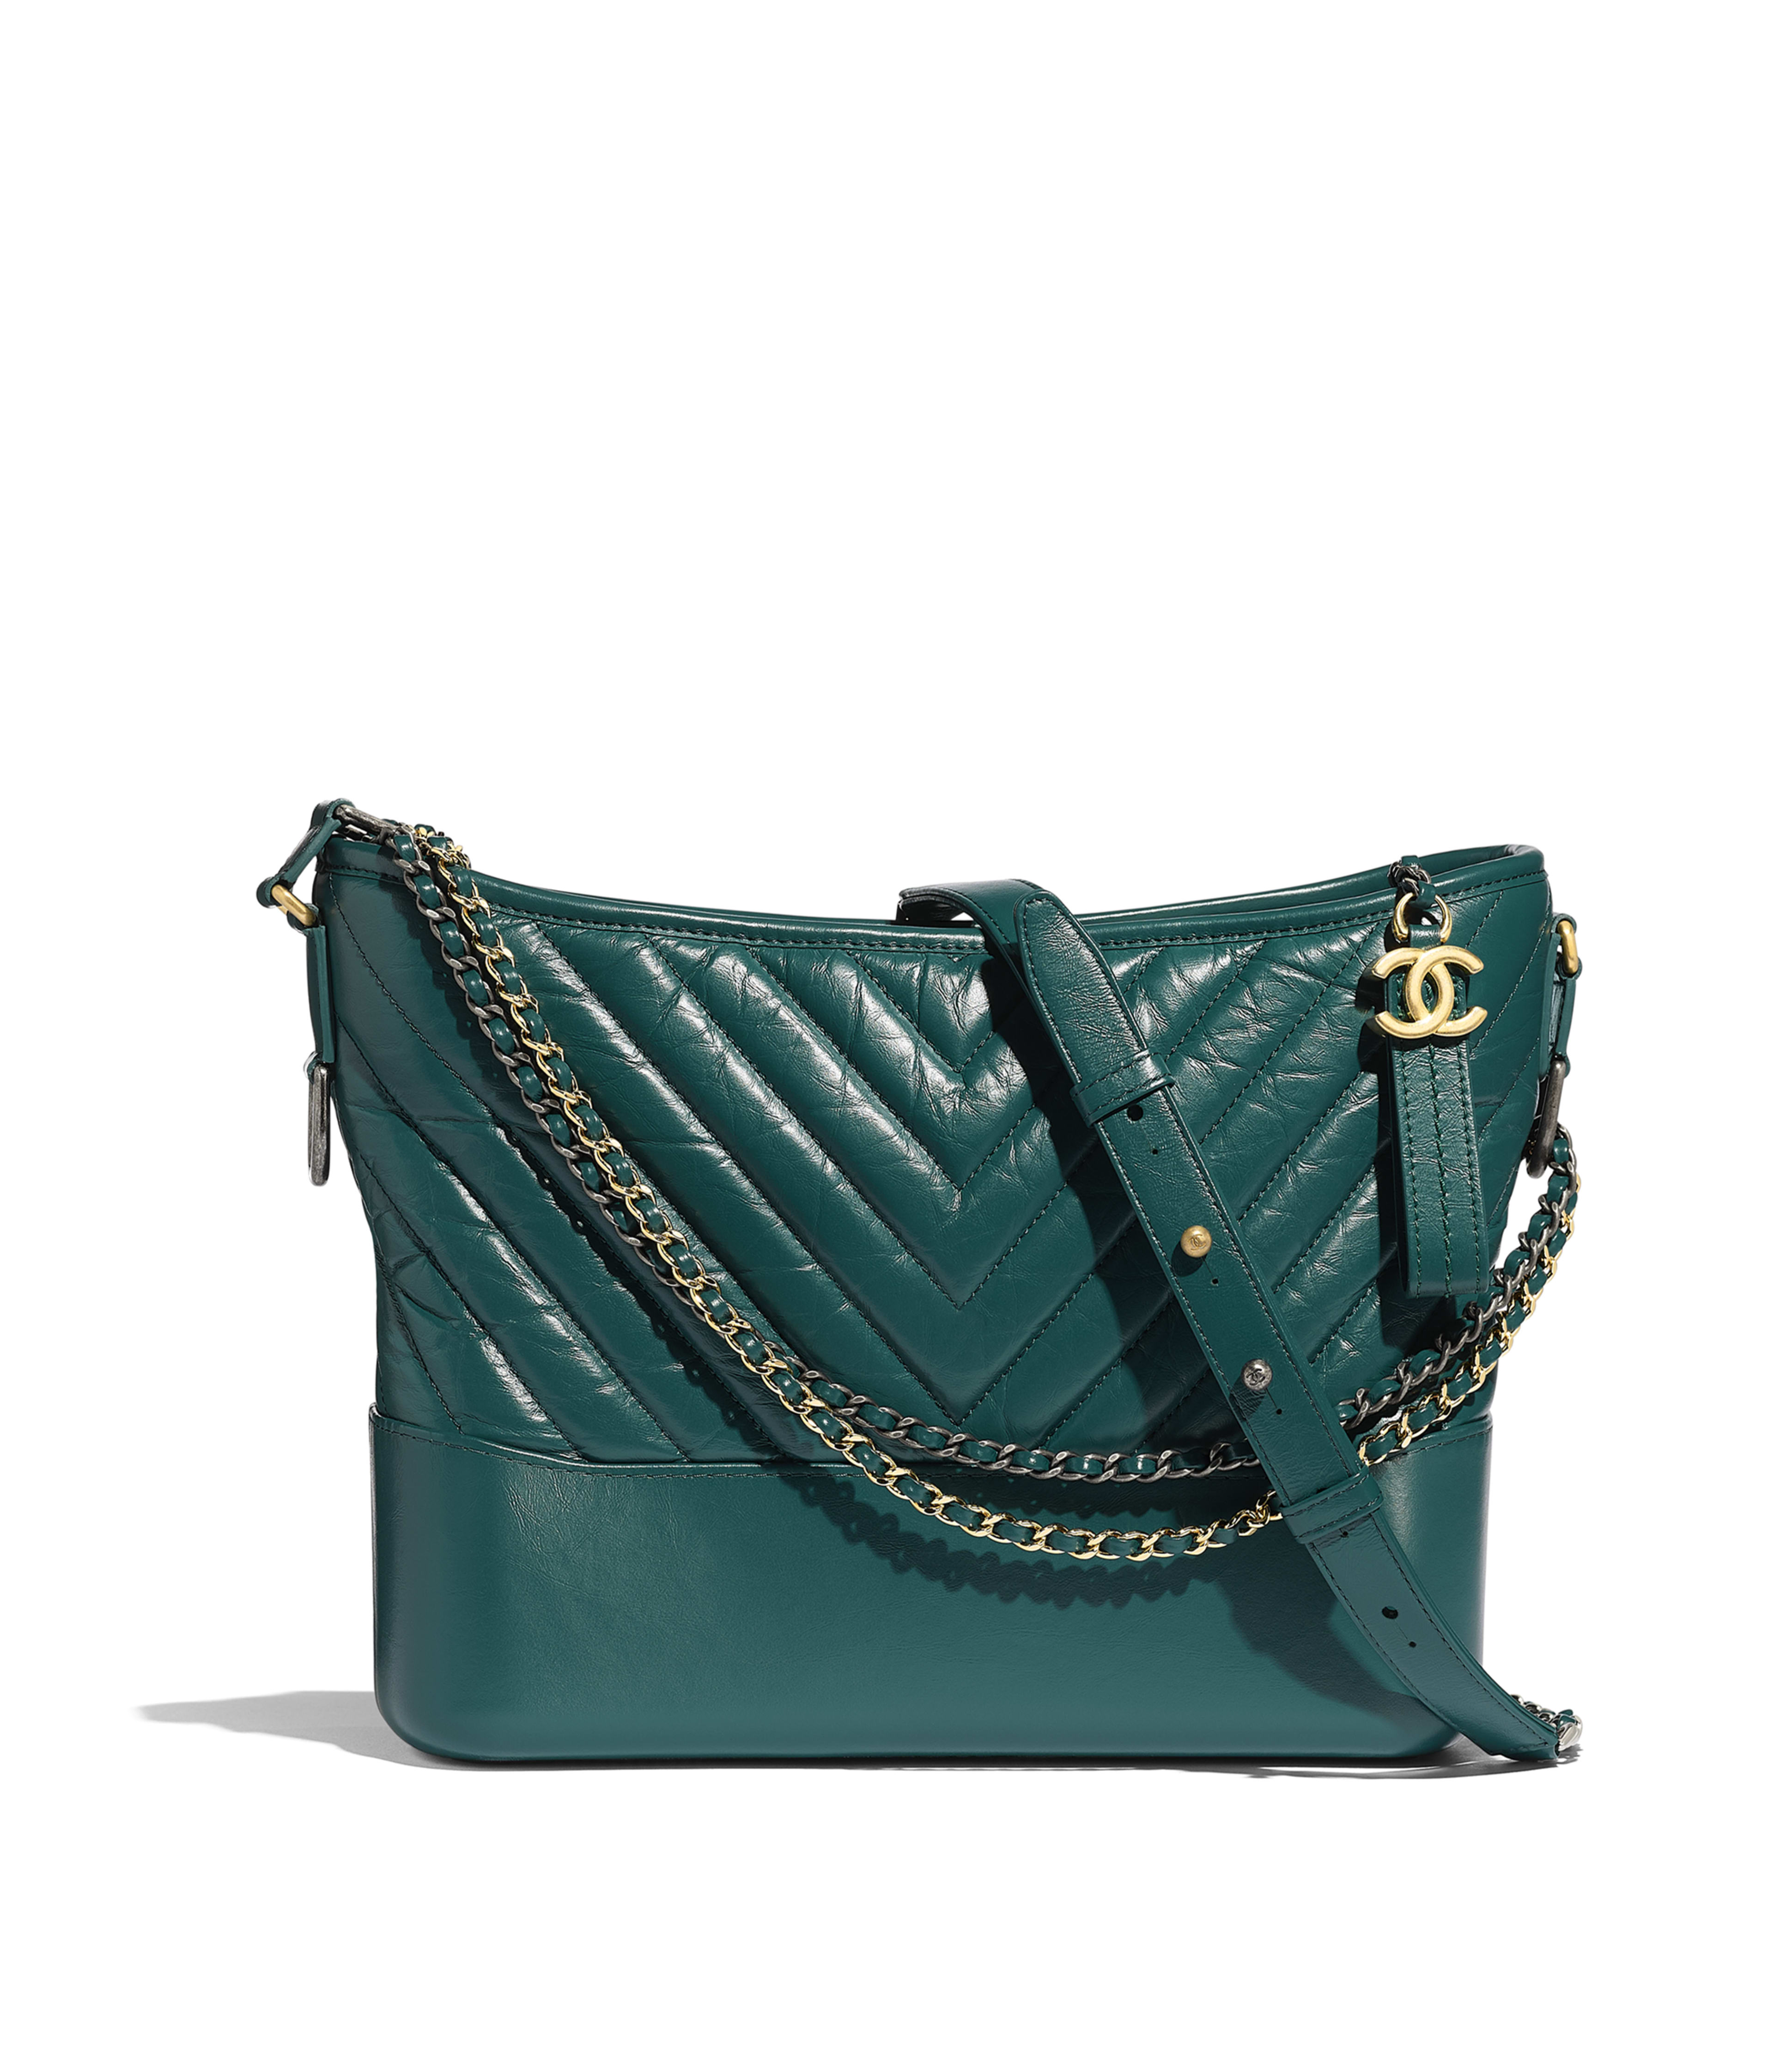 85bac3194e1d Chanel Bags Pictures 2017 - Style Guru  Fashion